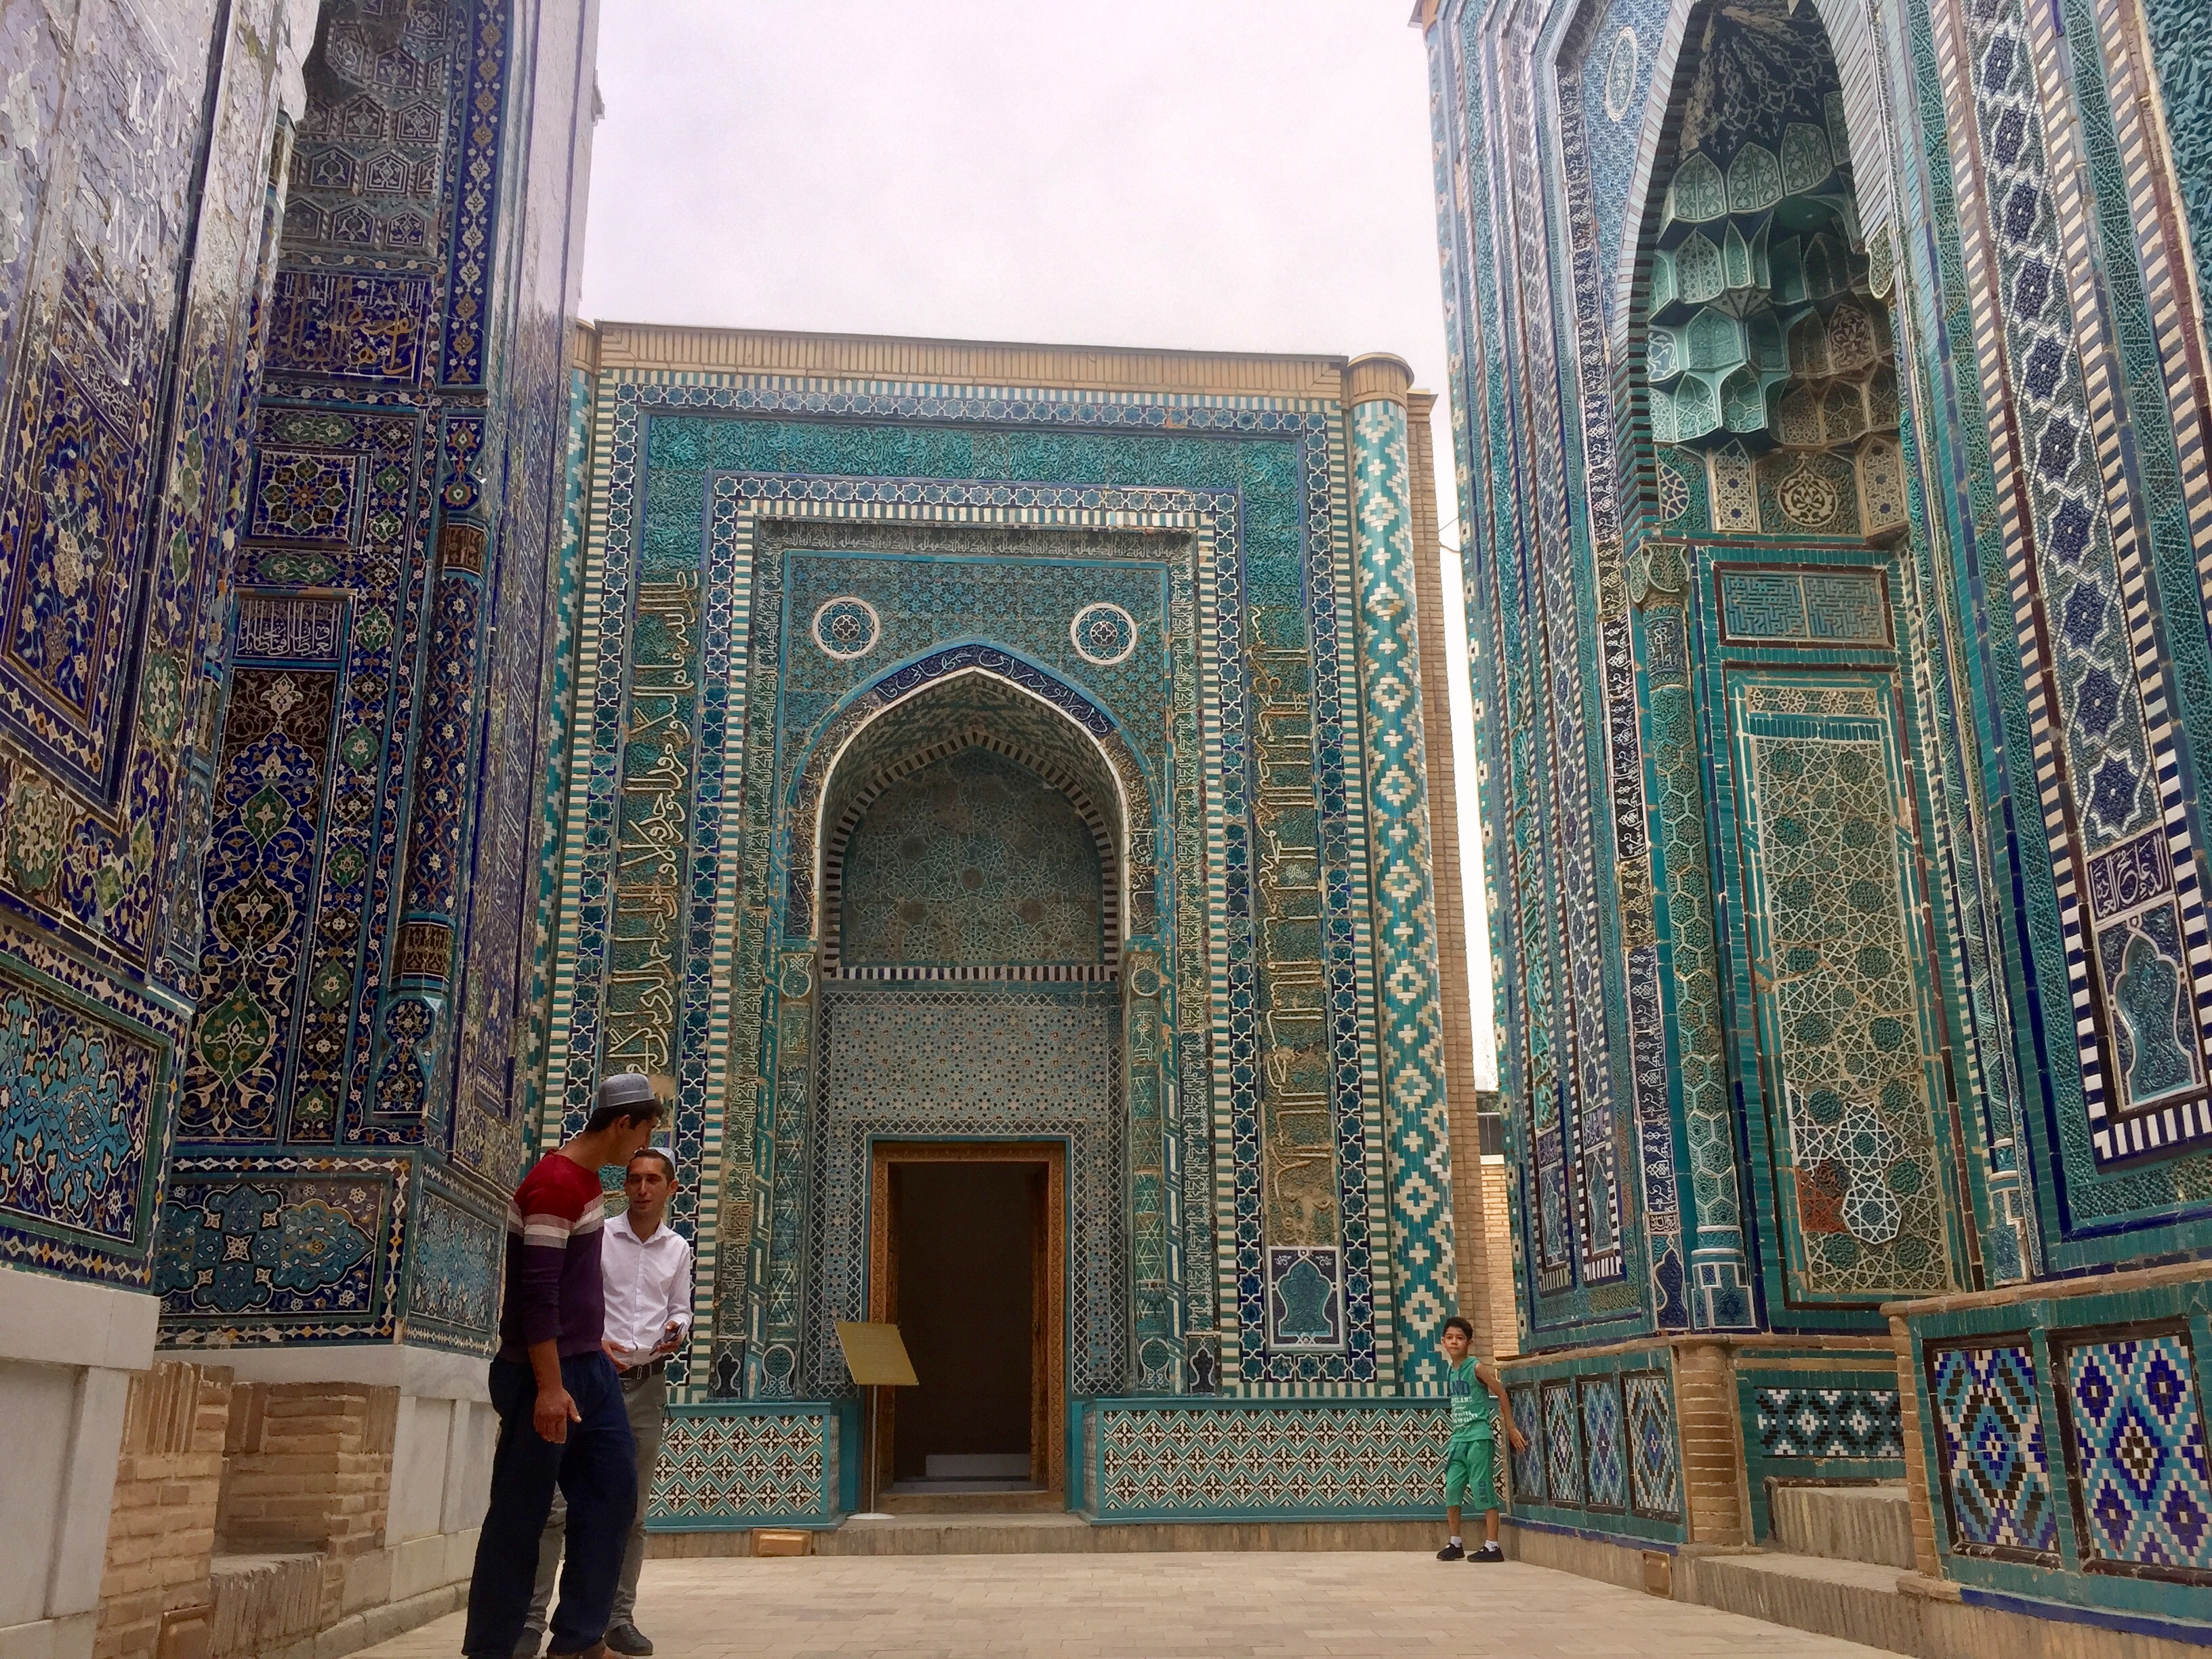 Blue tiled mausoleums in the Shah-i-Zinda necropolis